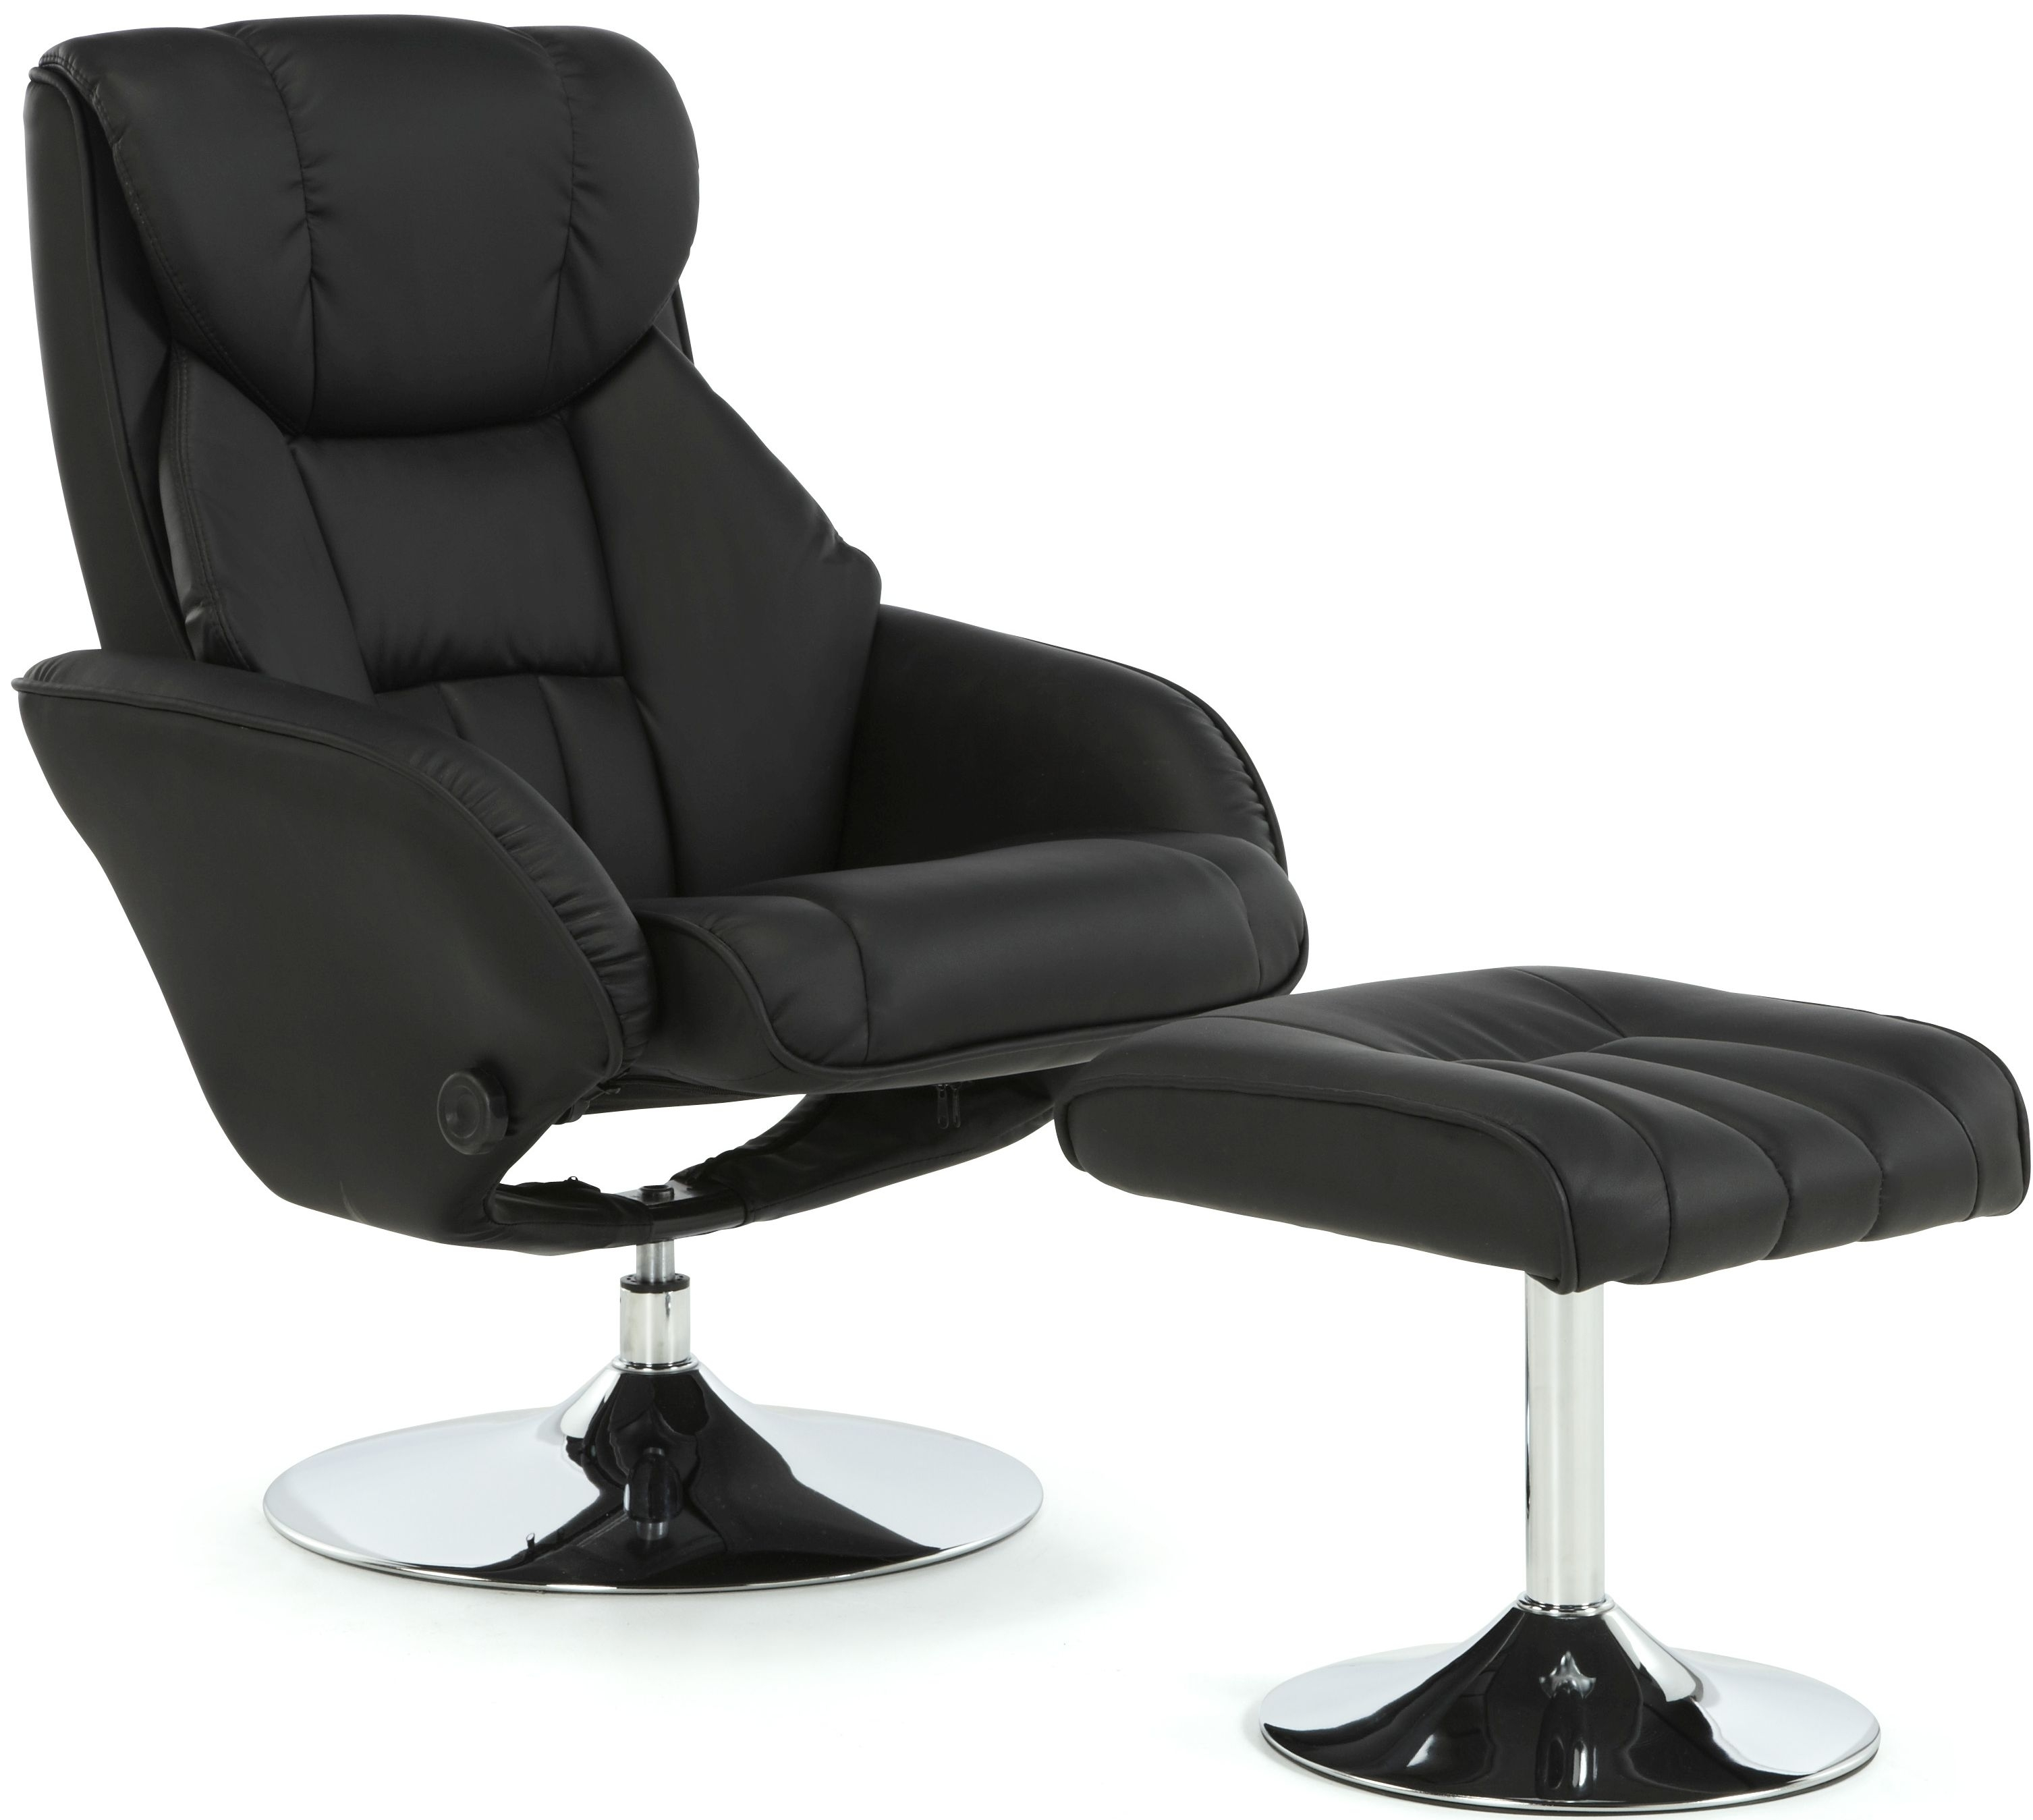 Serene Larvik Black Faux Leather Recliner Chair